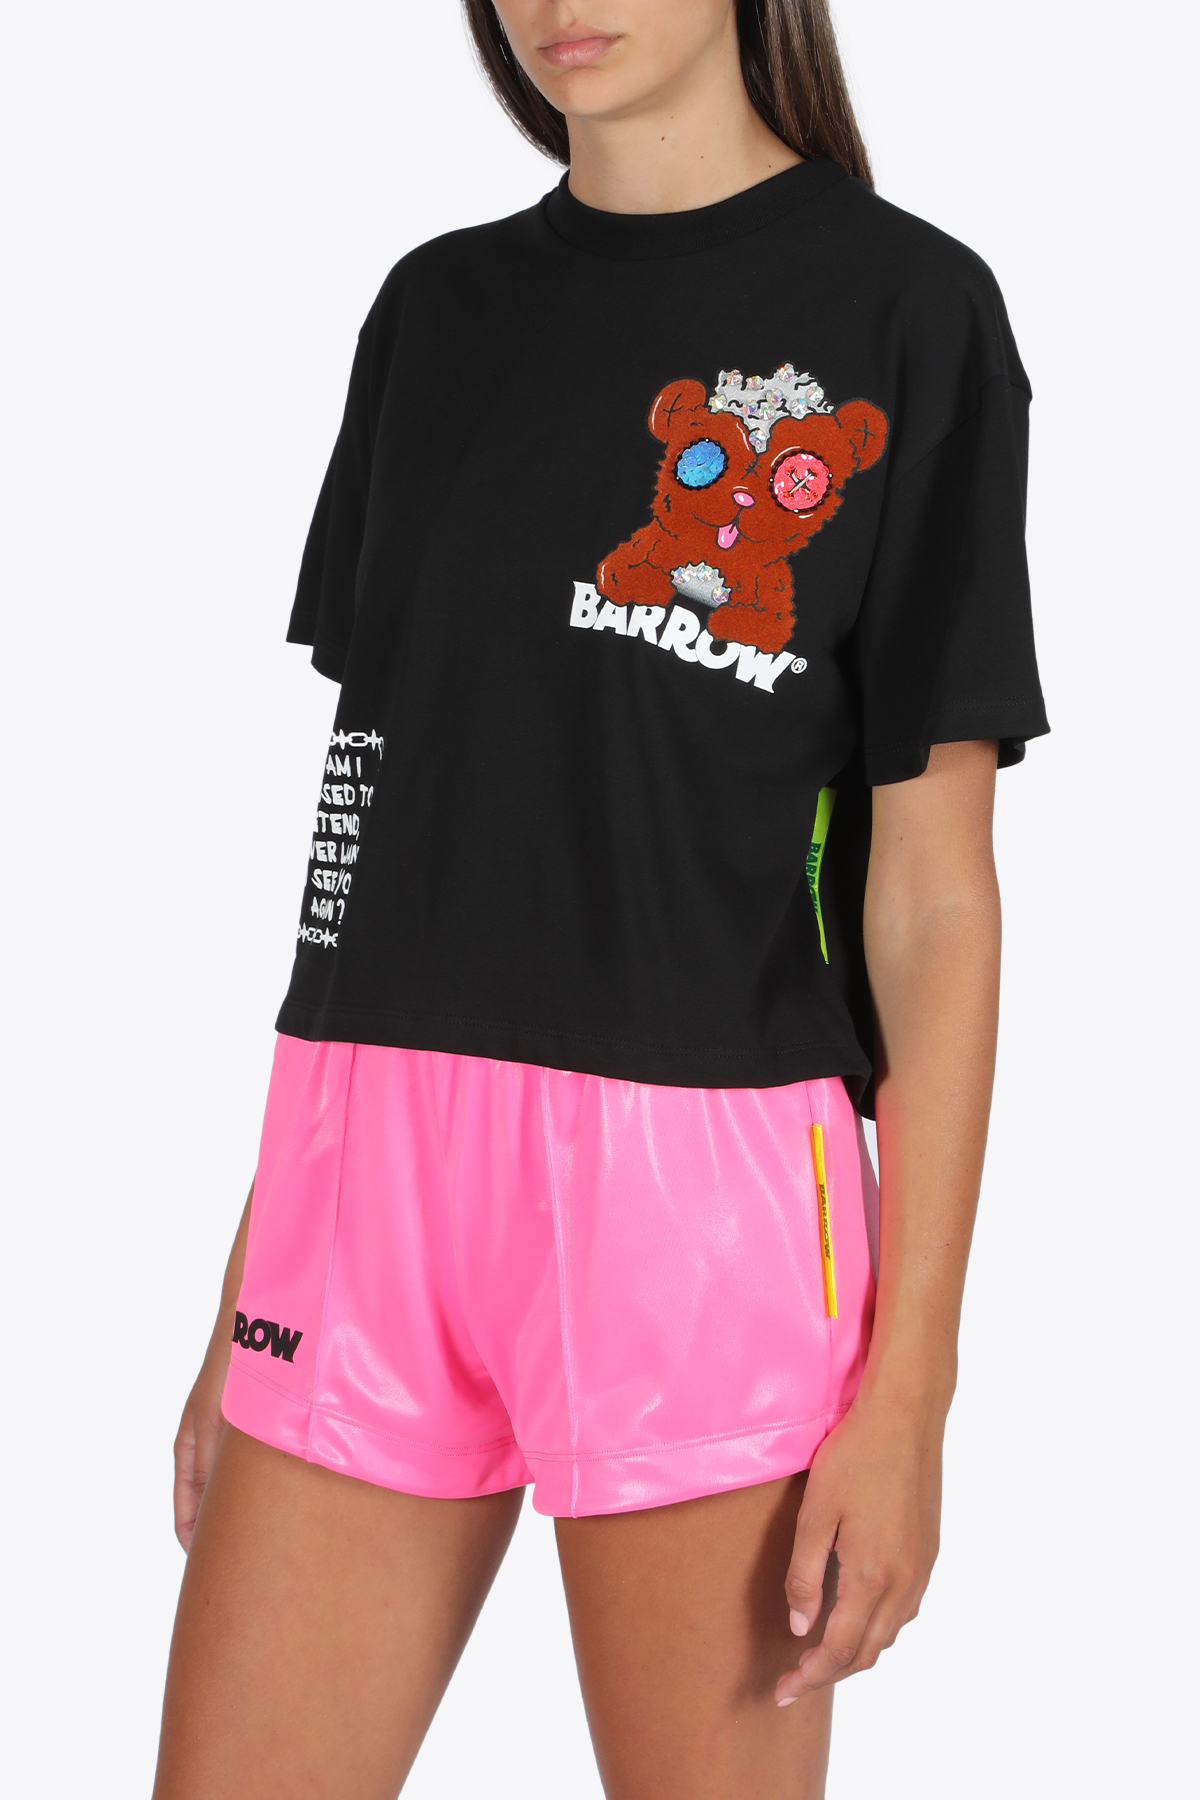 crystal edition cropped t-shirt jersey BARROW | 8 | 026071B CRYSTAL EDITION CROPPED T-SHIRTBLACK